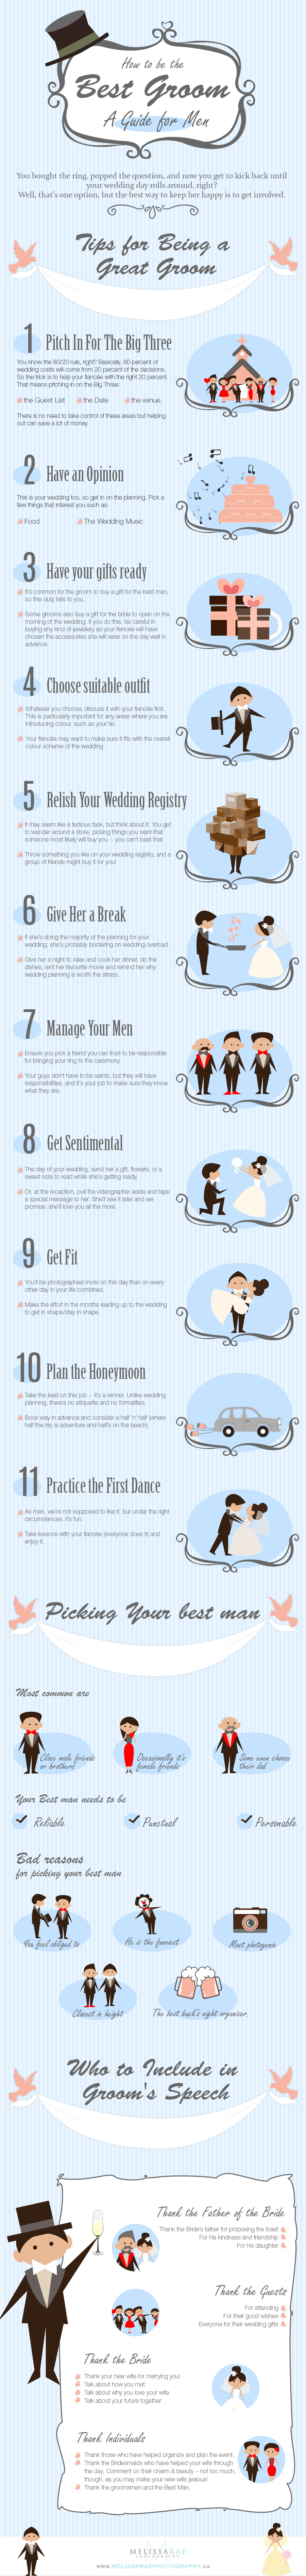 How-to-b-the-Best-Groom-AIW